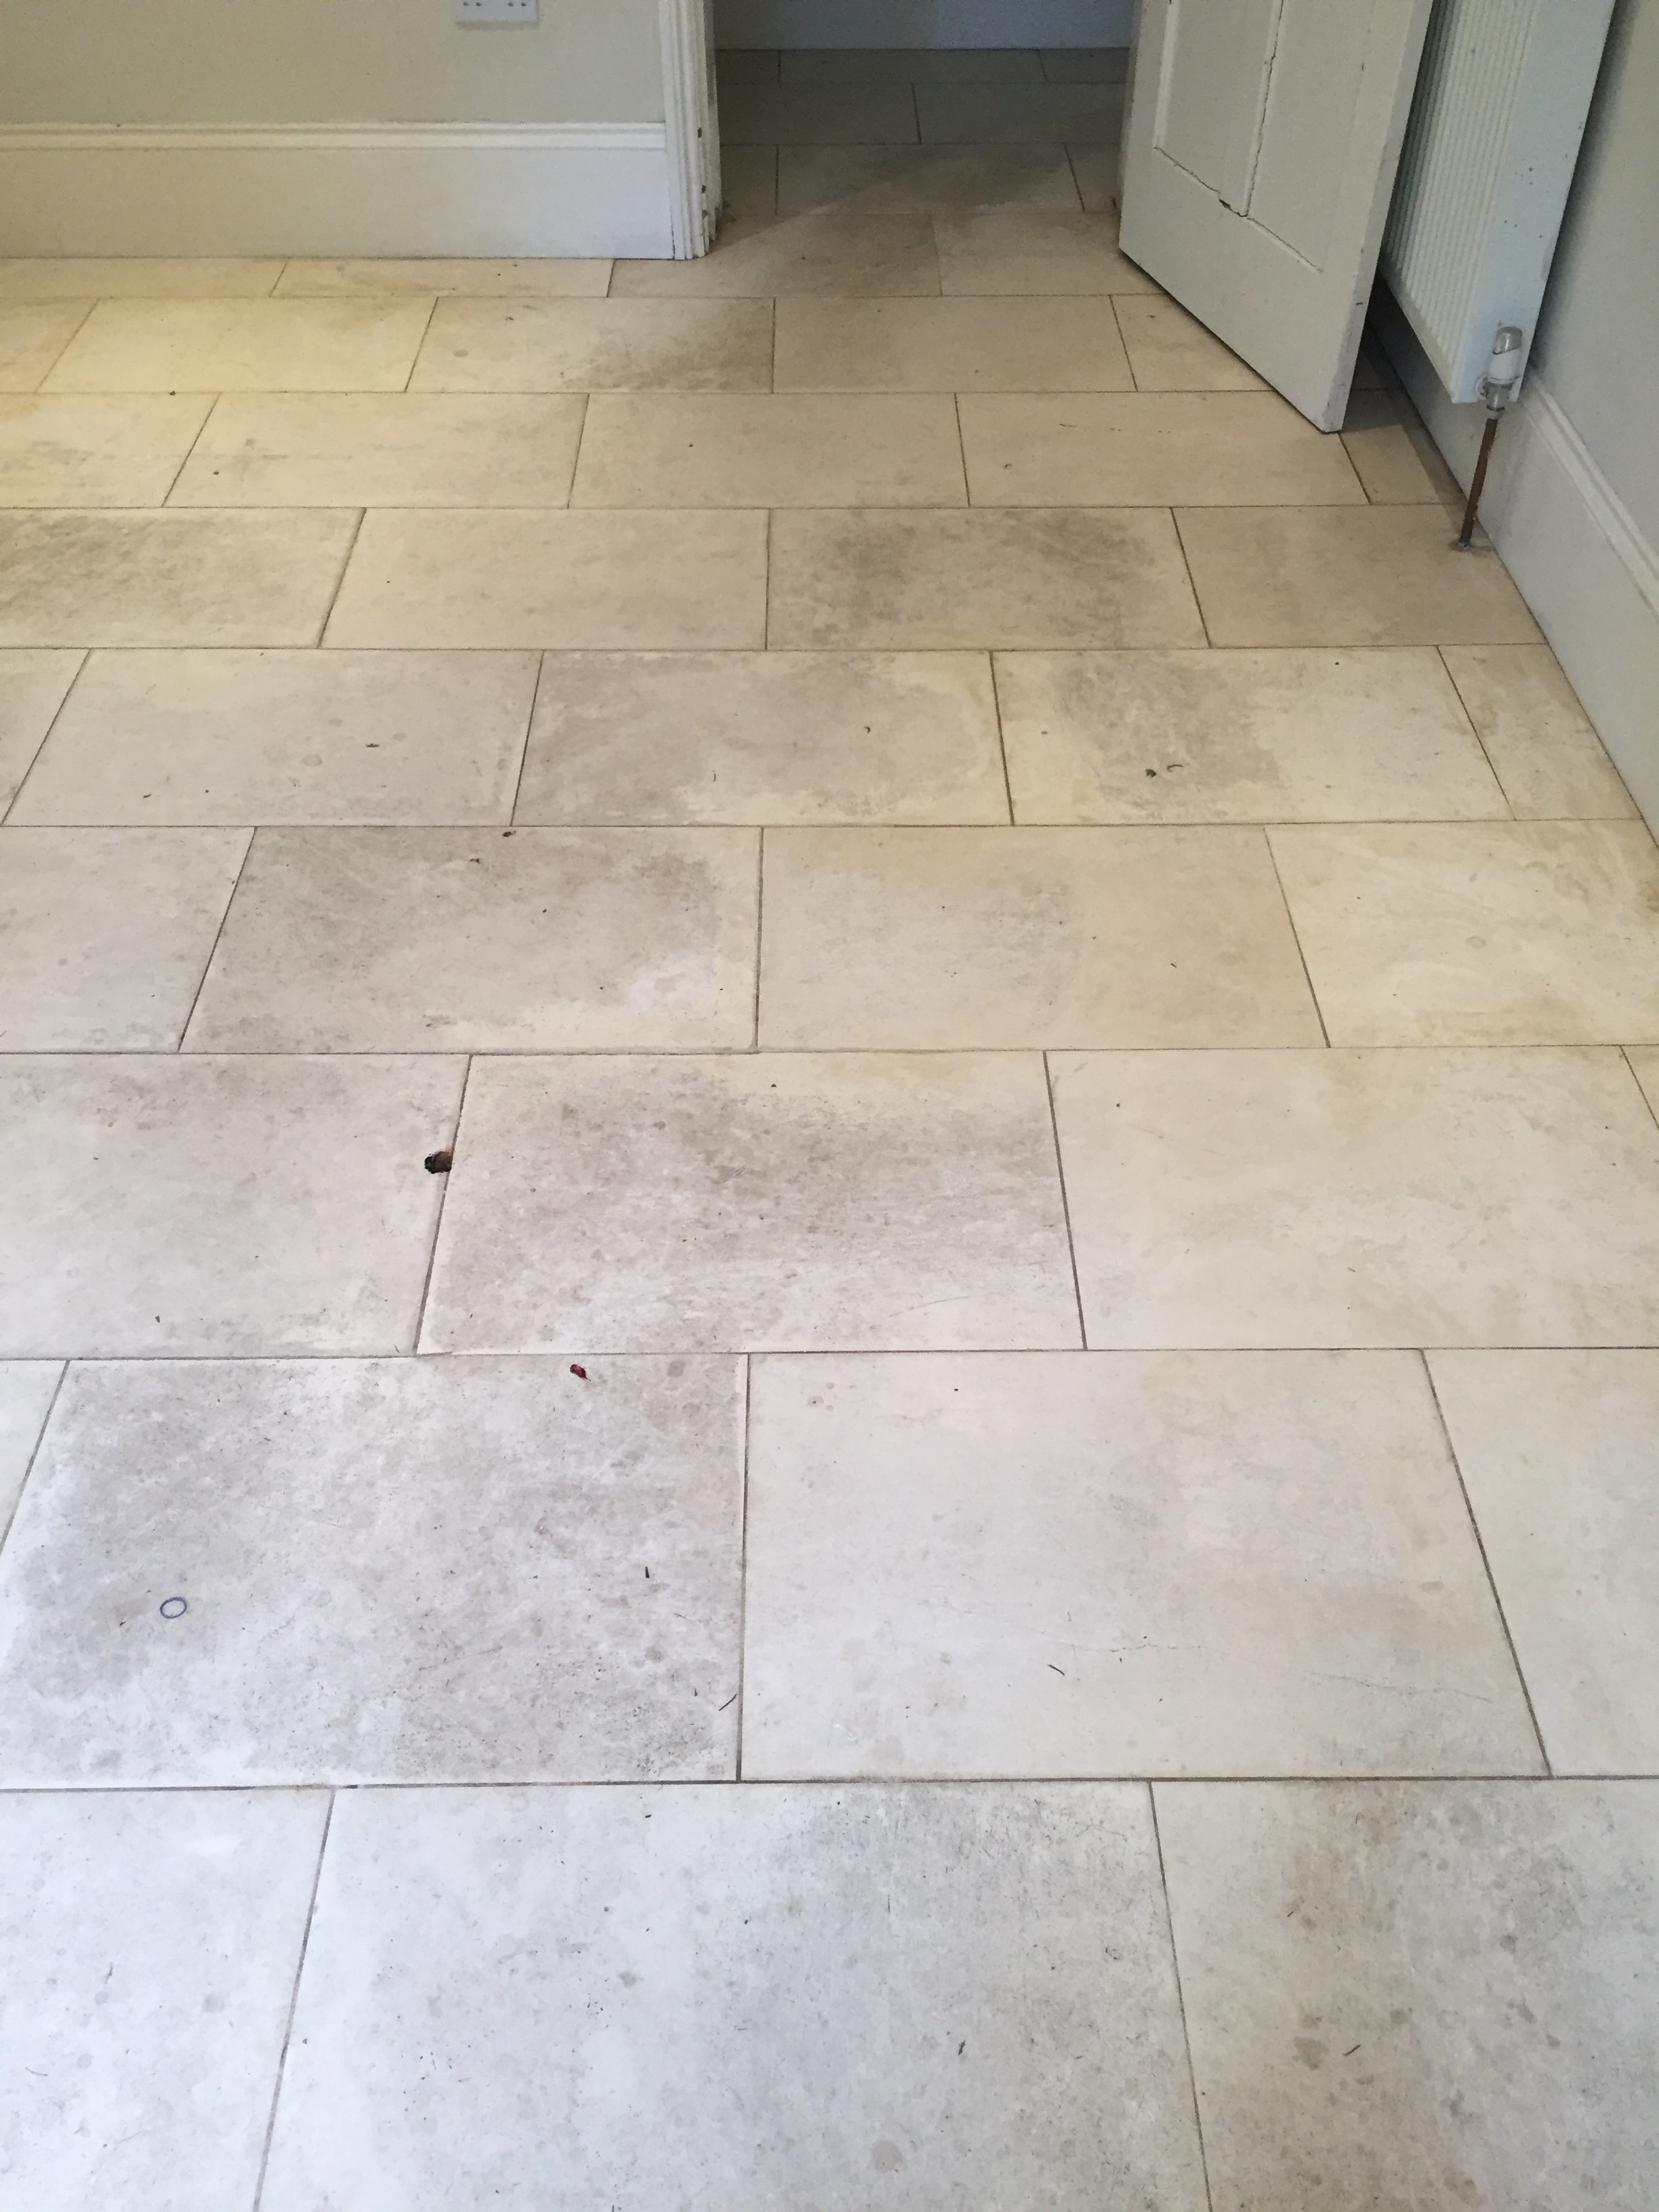 Stone Cleaning And Polishing Tips For Limestone Floors Information